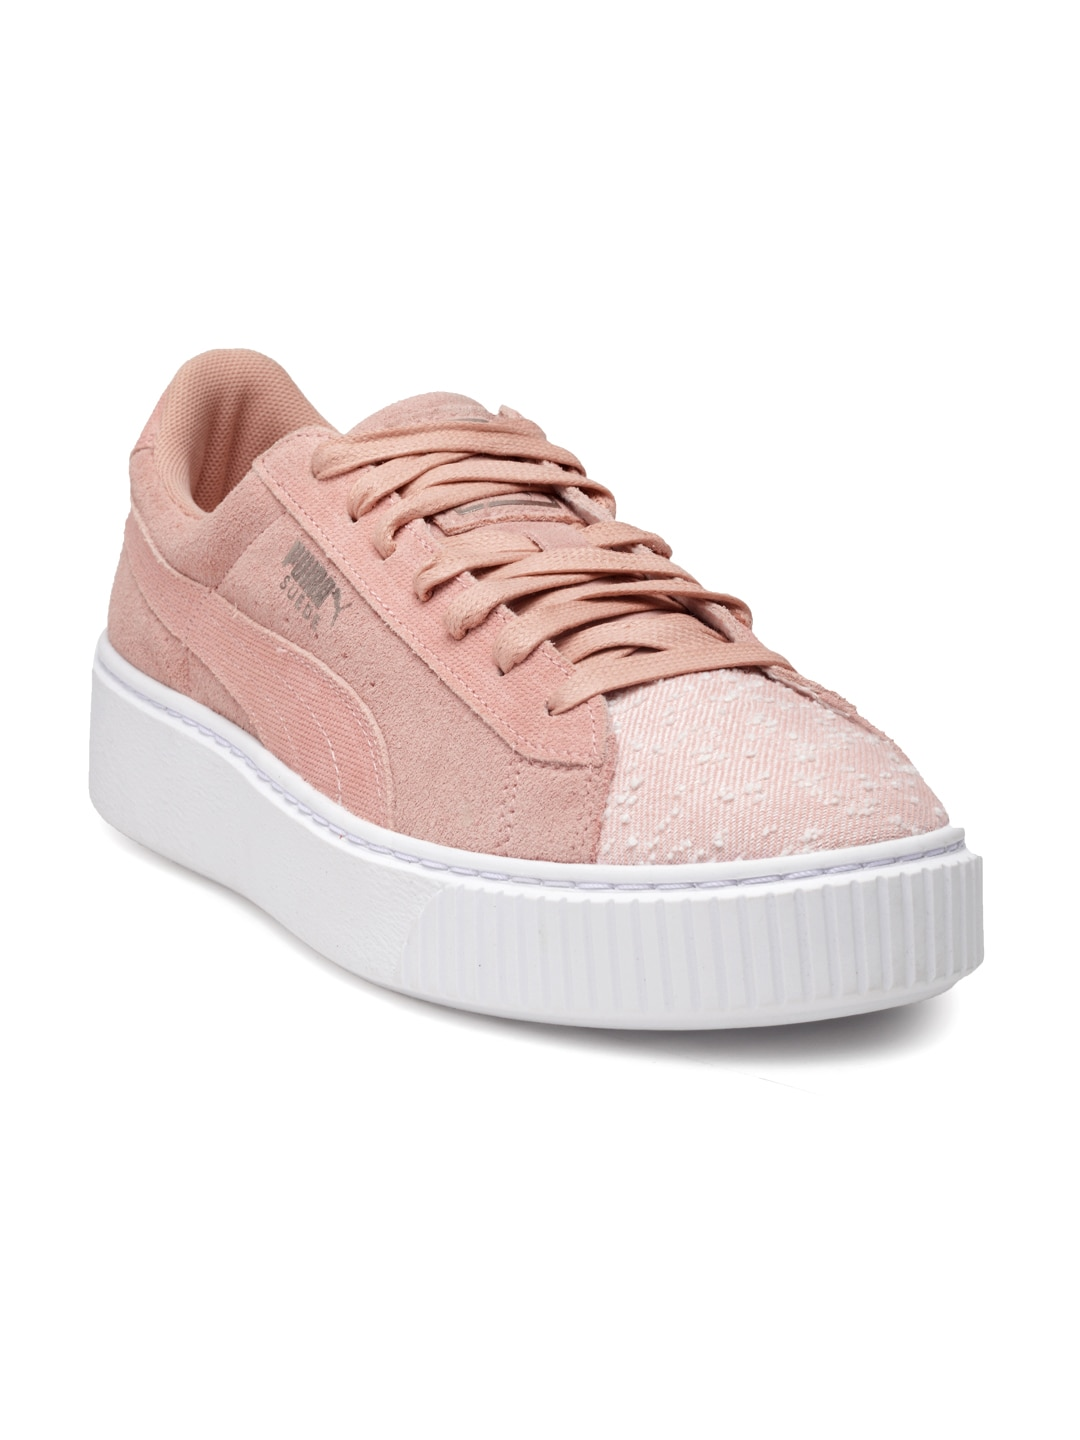 fe0b99b5f5d7 Pink Puma Casual Shoes - Buy Pink Puma Casual Shoes online in India